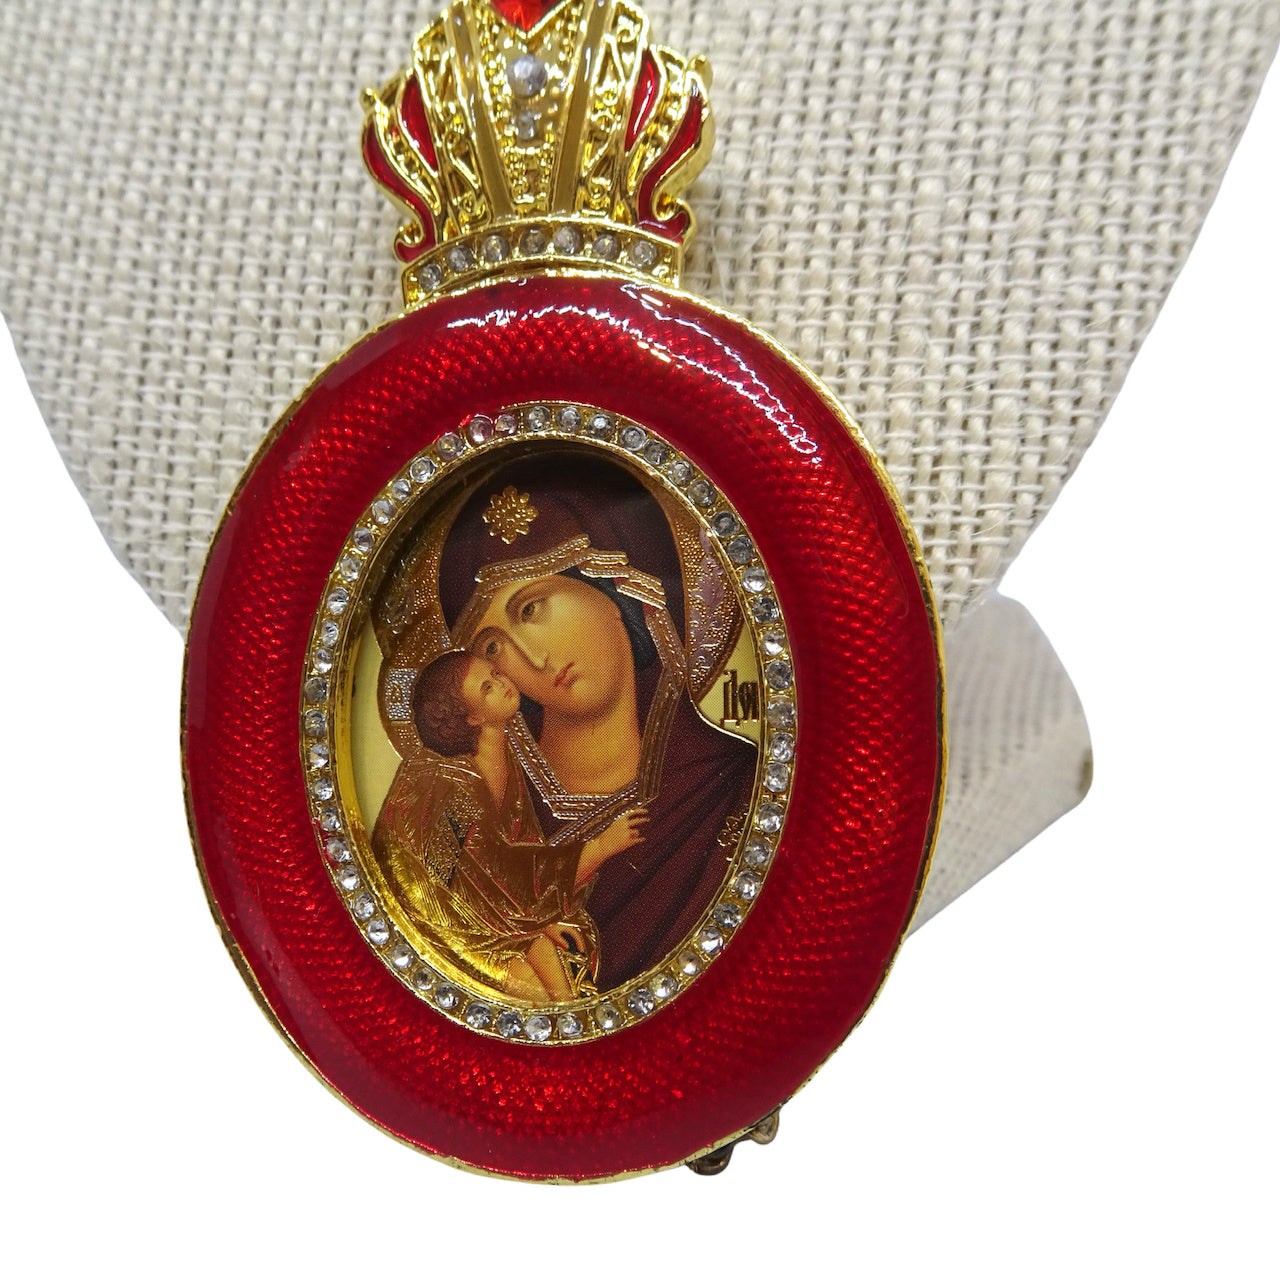 Faberge Style Icon Christmas Tree Ornament of the Holy Theotokos